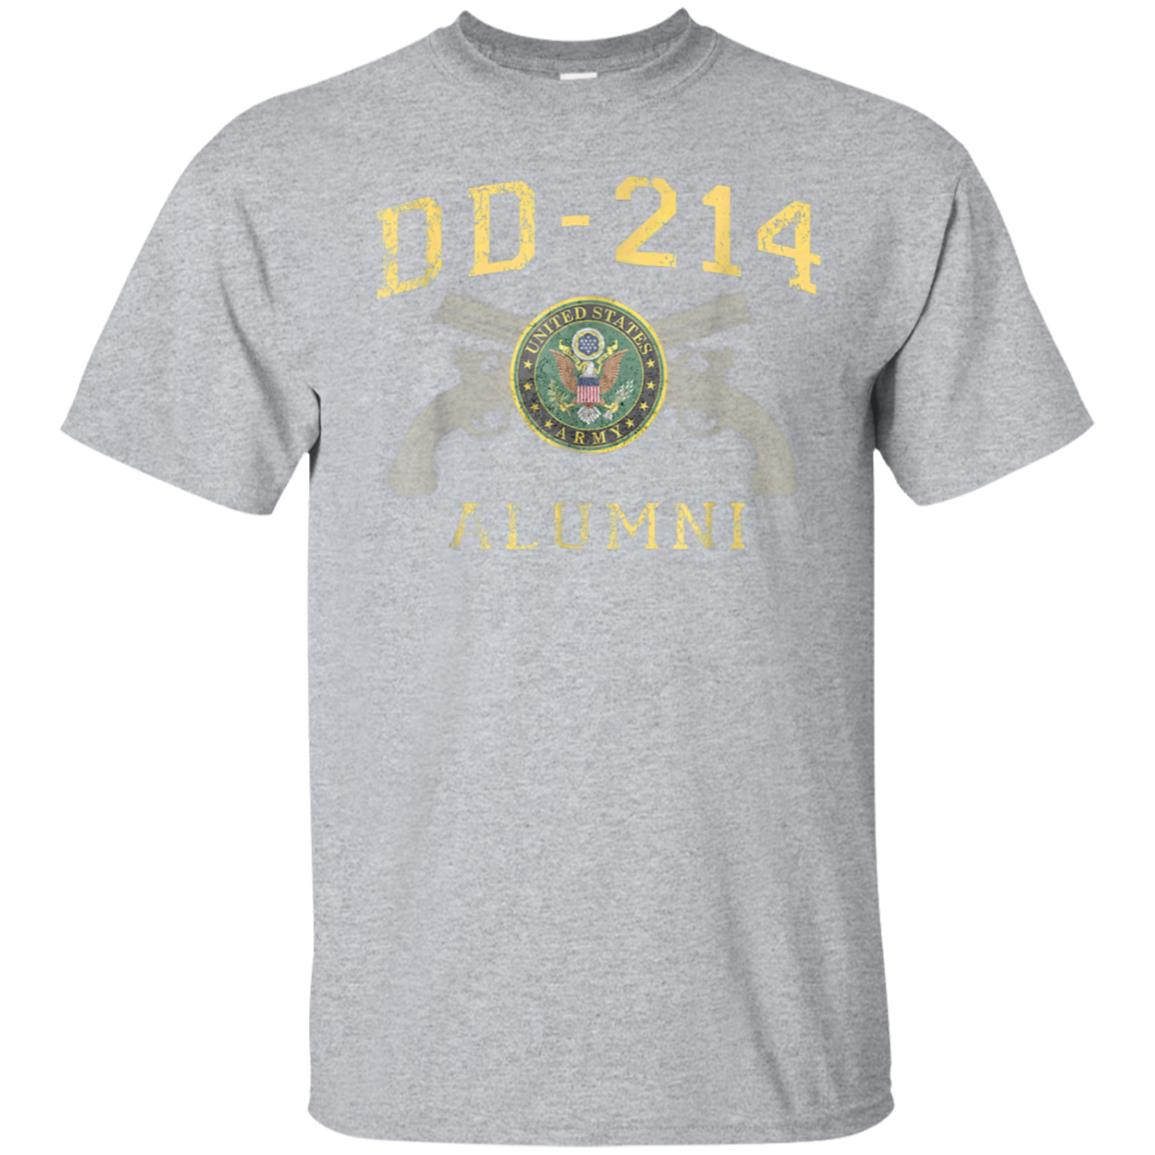 US Army Shirt Military Police DD214 T Shirt 99promocode